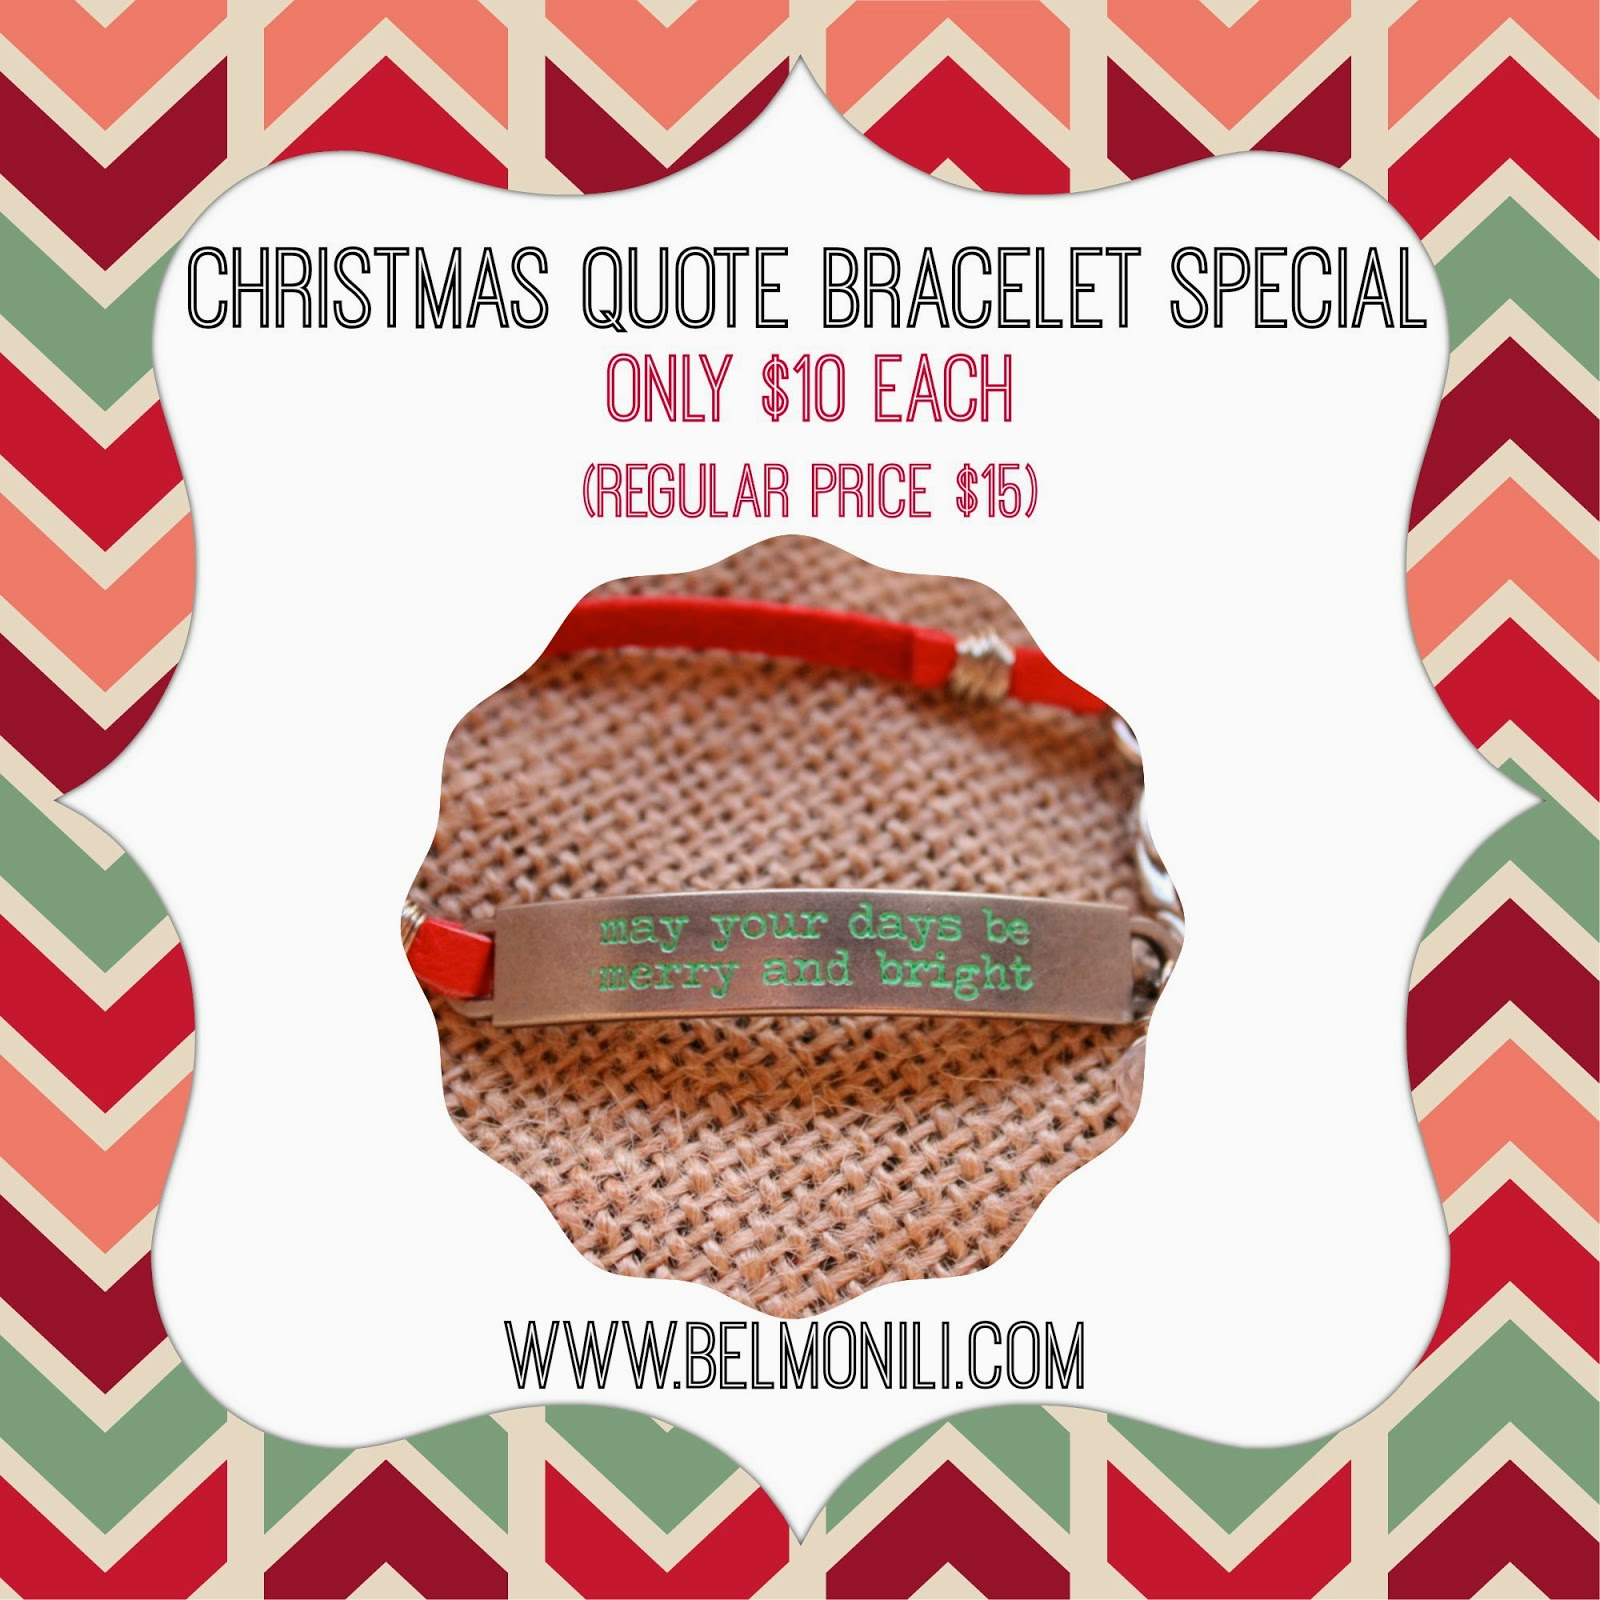 bel monili, christmas bracelet, christmas quote, christmas gift, gifts under $10, free shipping, pittsburgh gift, pittsburgh art, stamped quote, quote jewelry